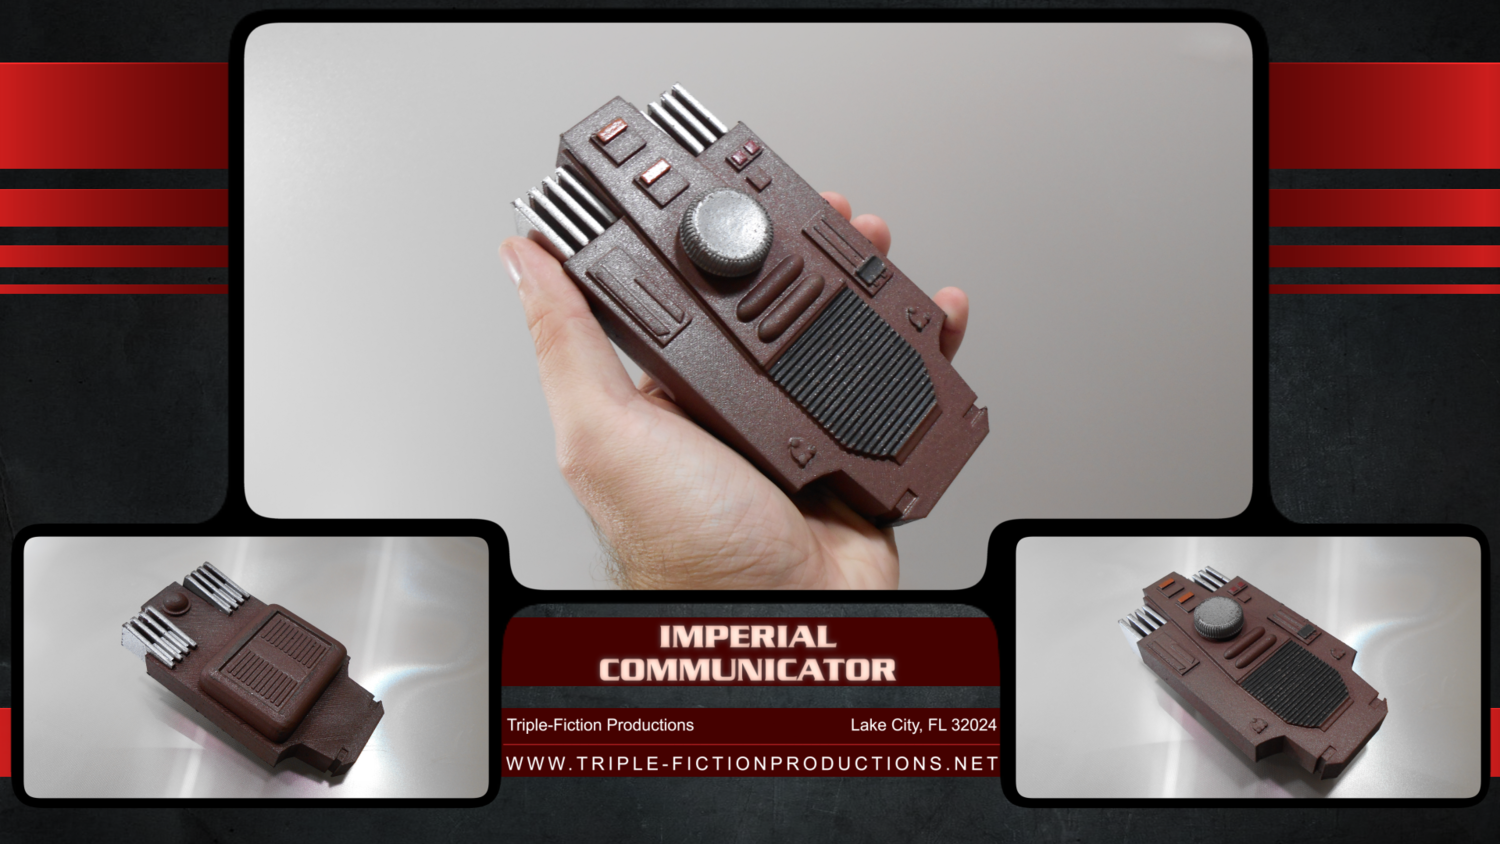 Imperial Communicator